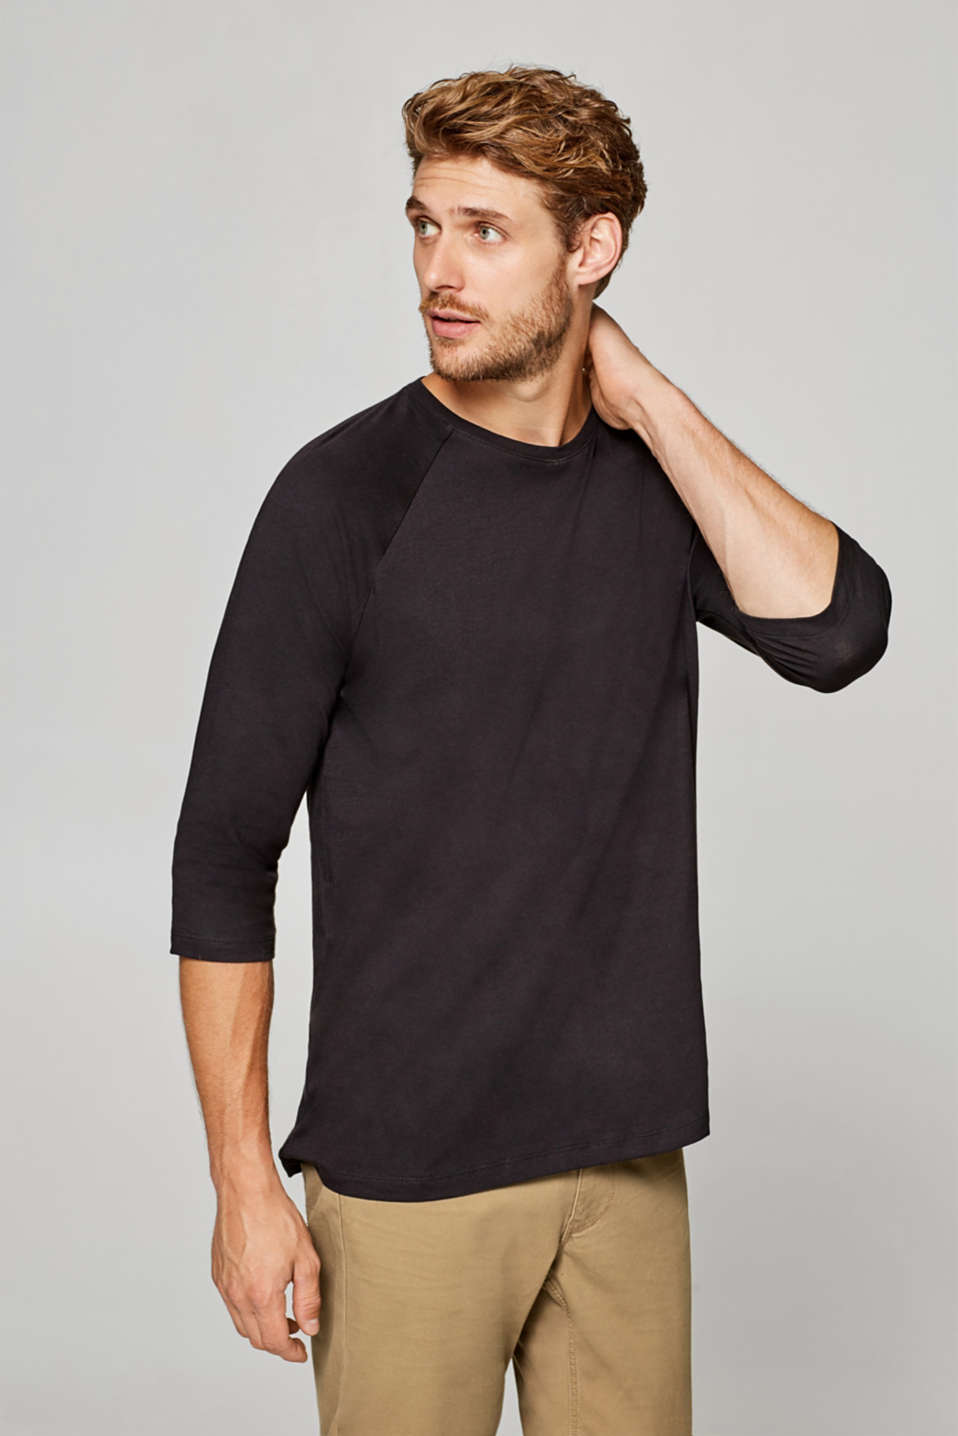 Esprit - Organic cotton-jersey T-shirt with 3/4-length sleeves